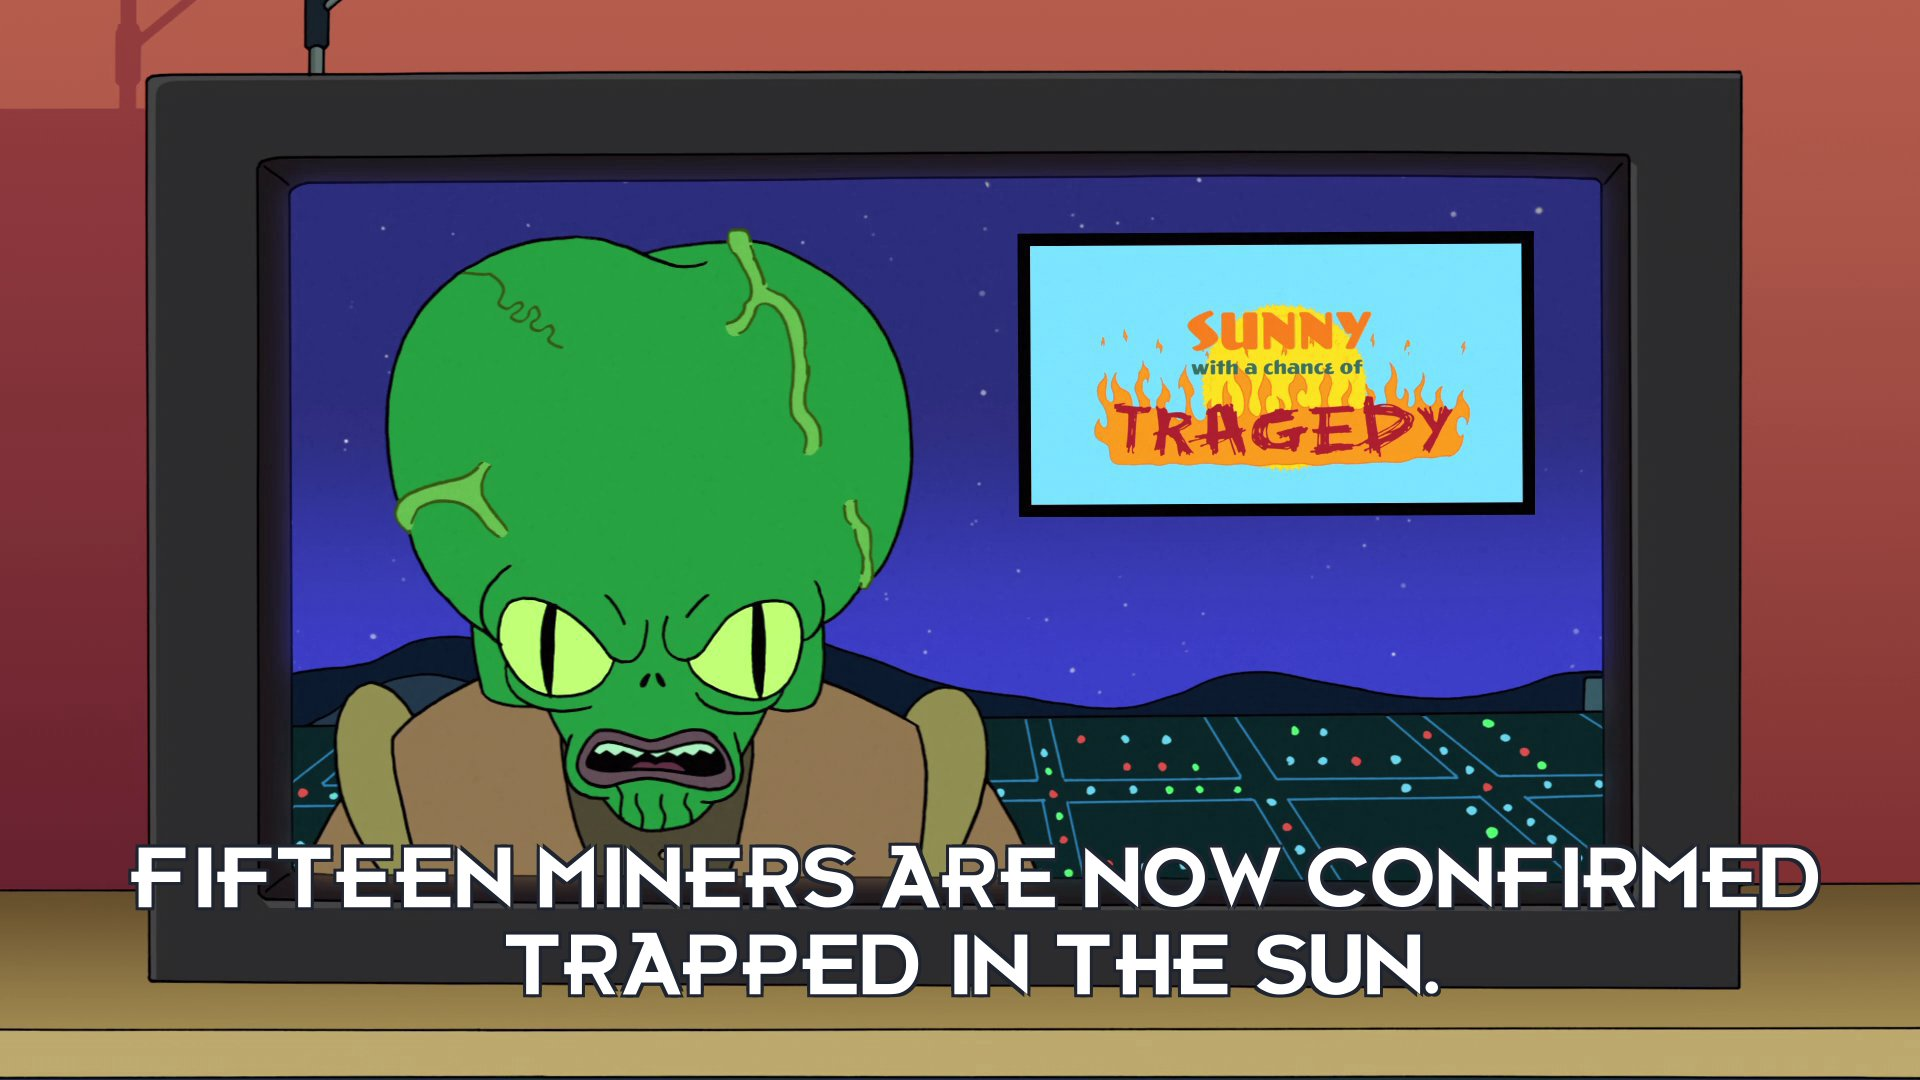 Morbo: Fifteen miners are now confirmed trapped in the Sun.